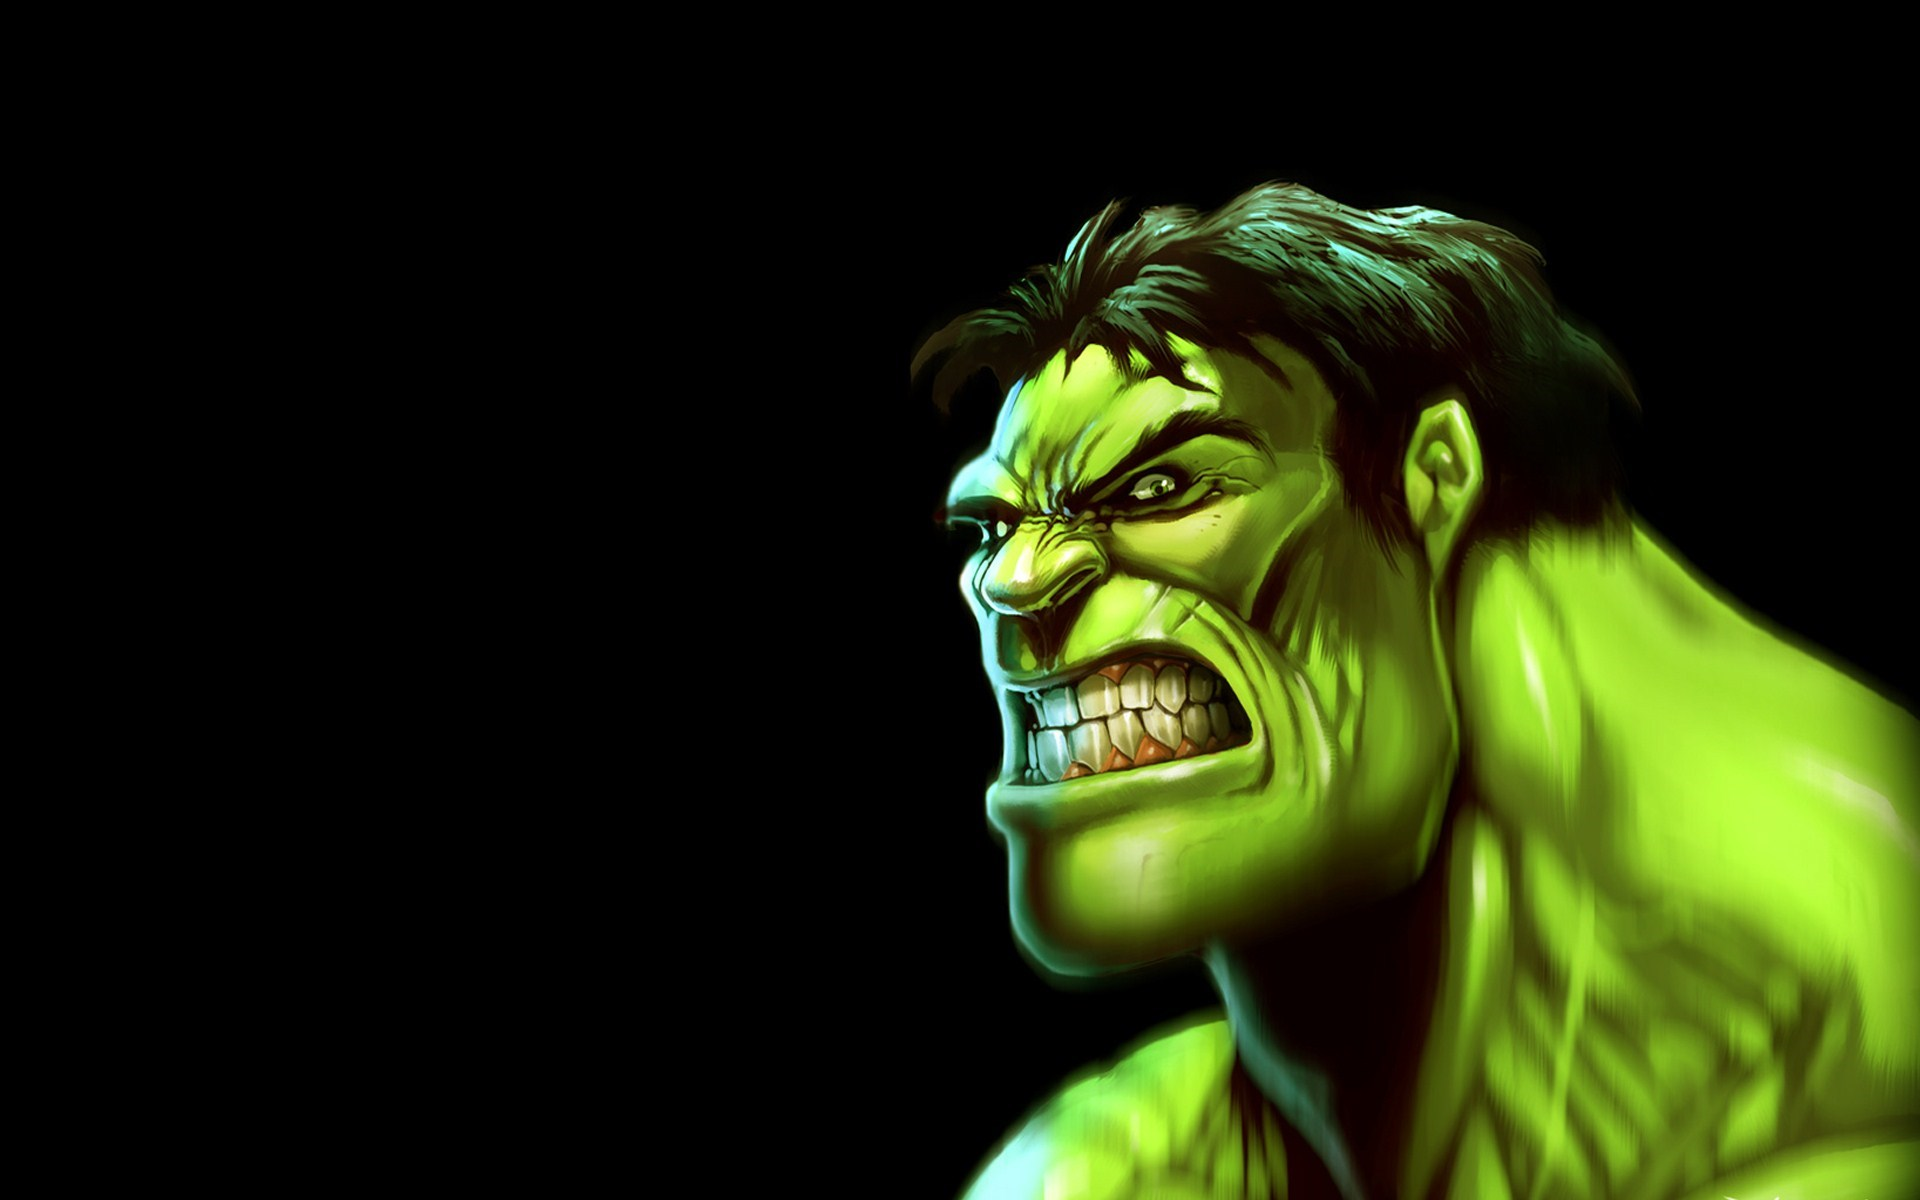 The Hulk 2015 Wallpapers   SlotsMarvel 1920x1200